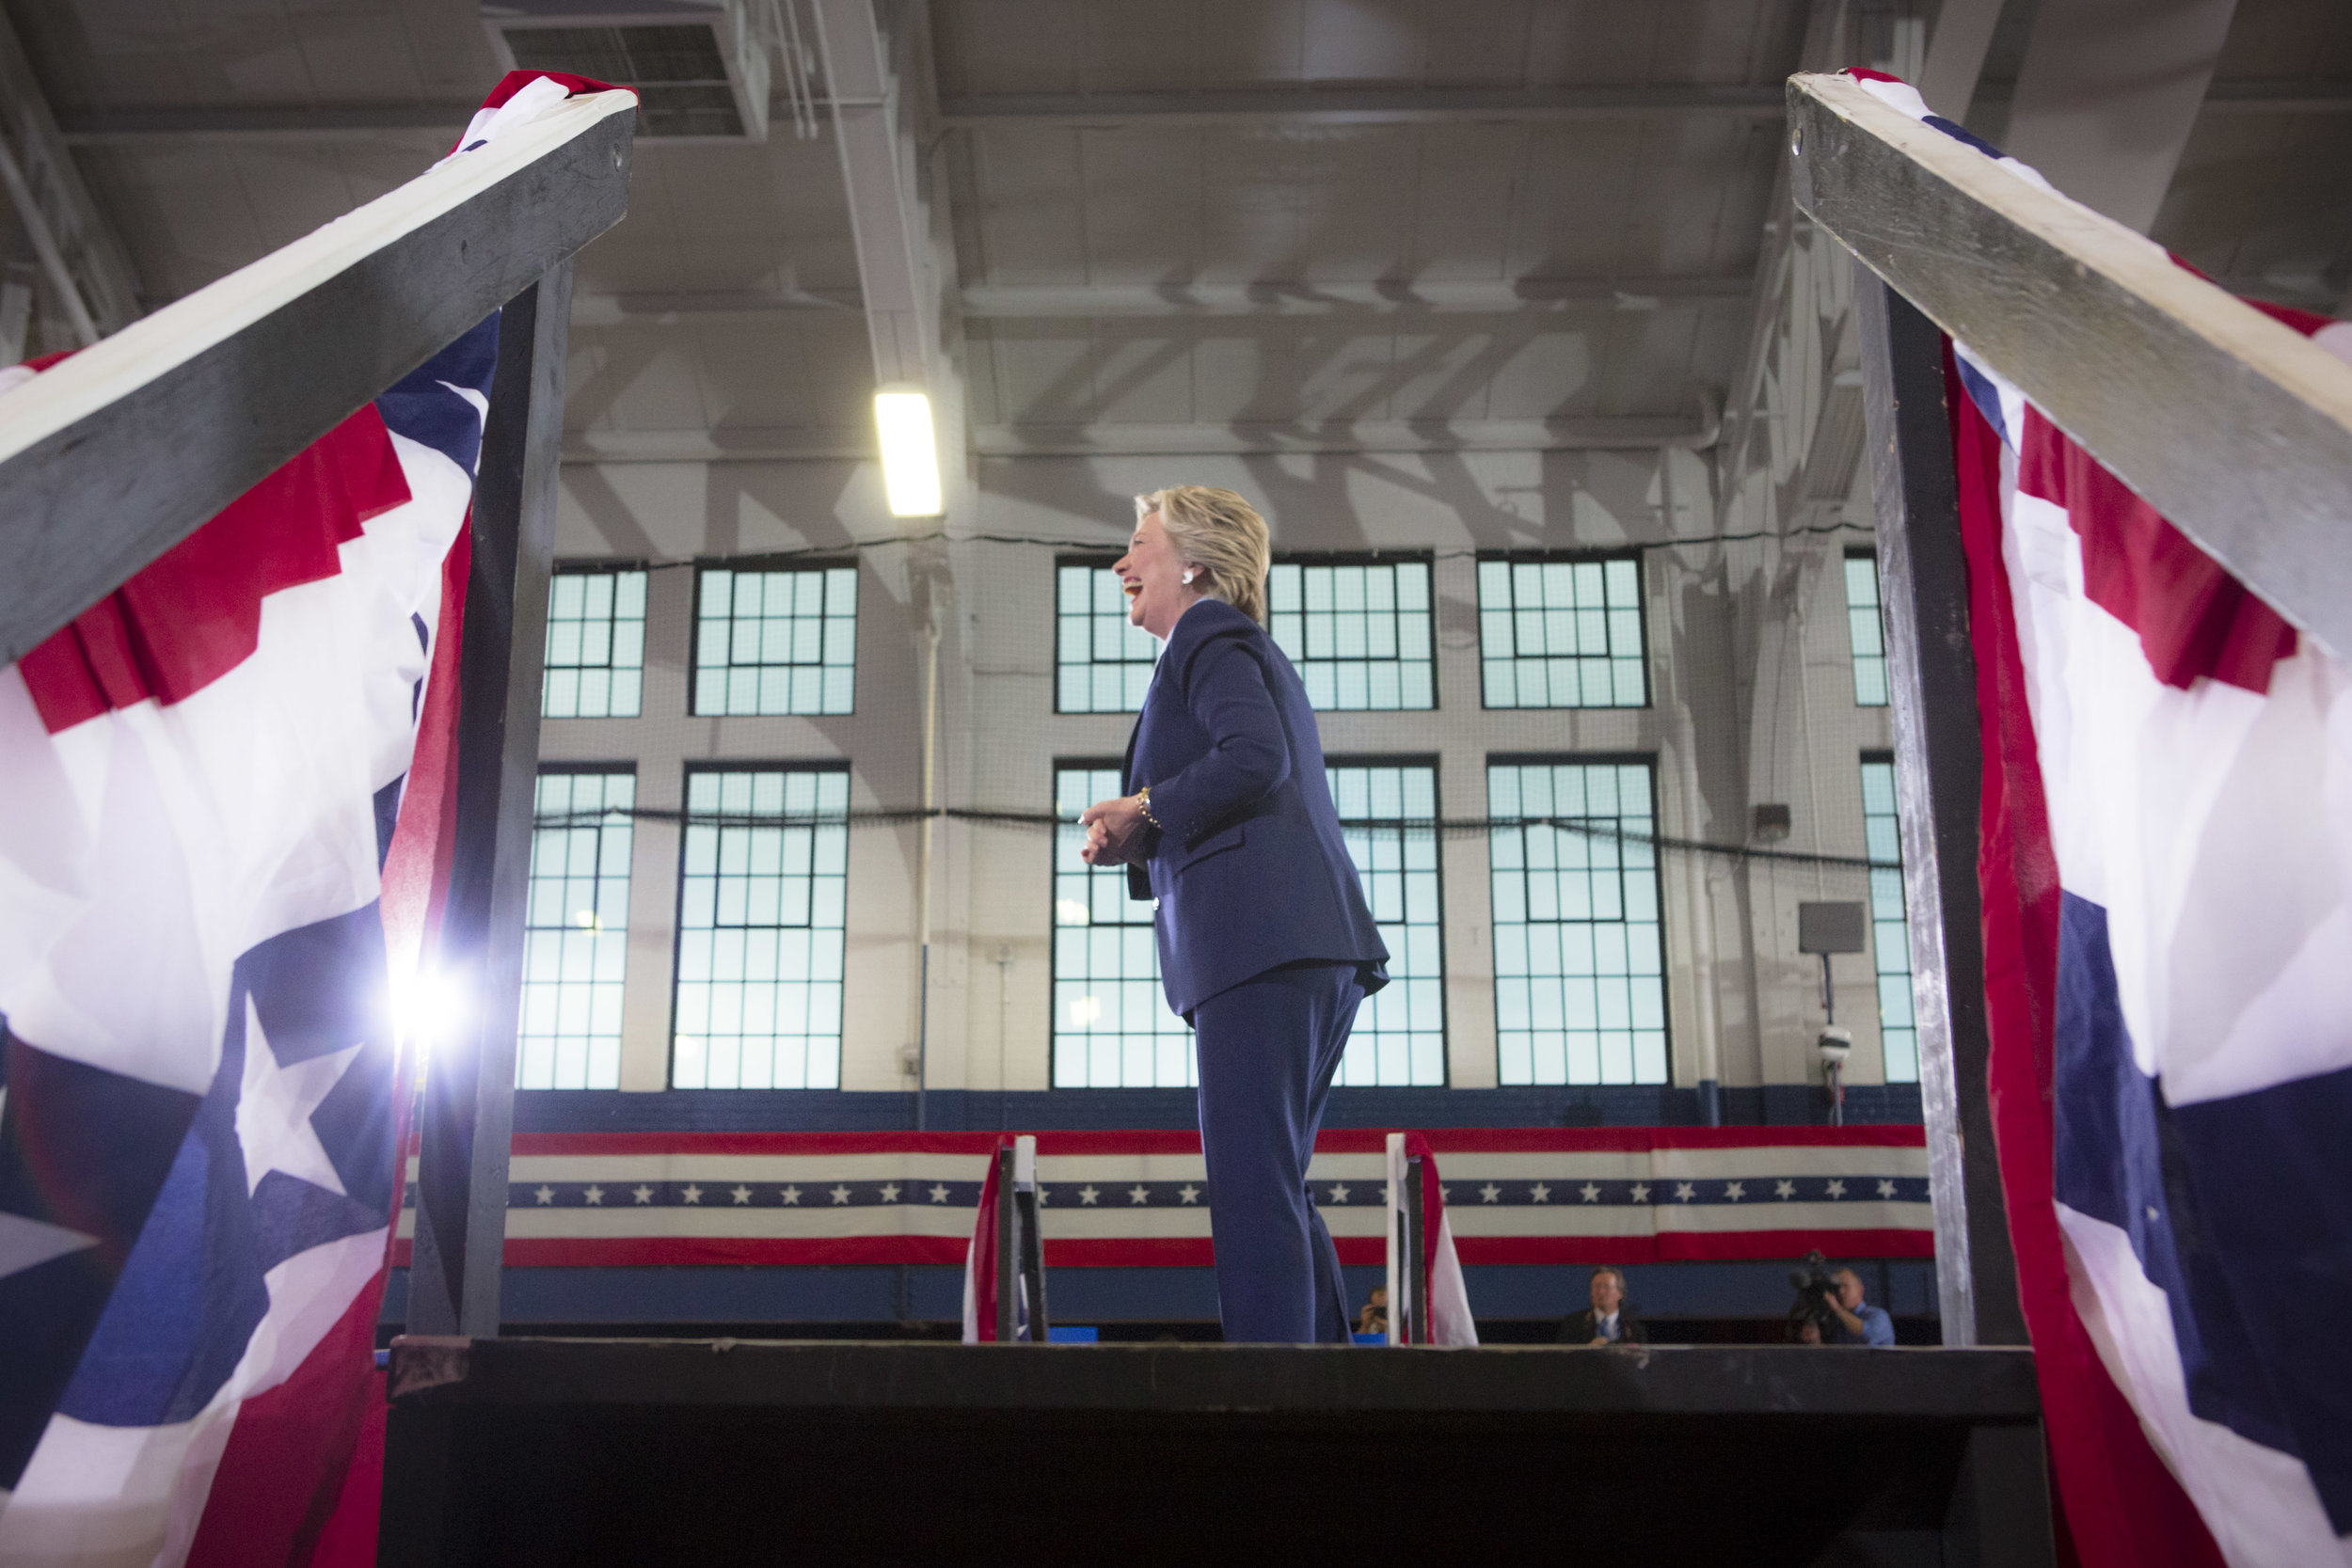 10032016_BJM_Hillary_Campaigns_in_Akron_Ohio_04.jpg